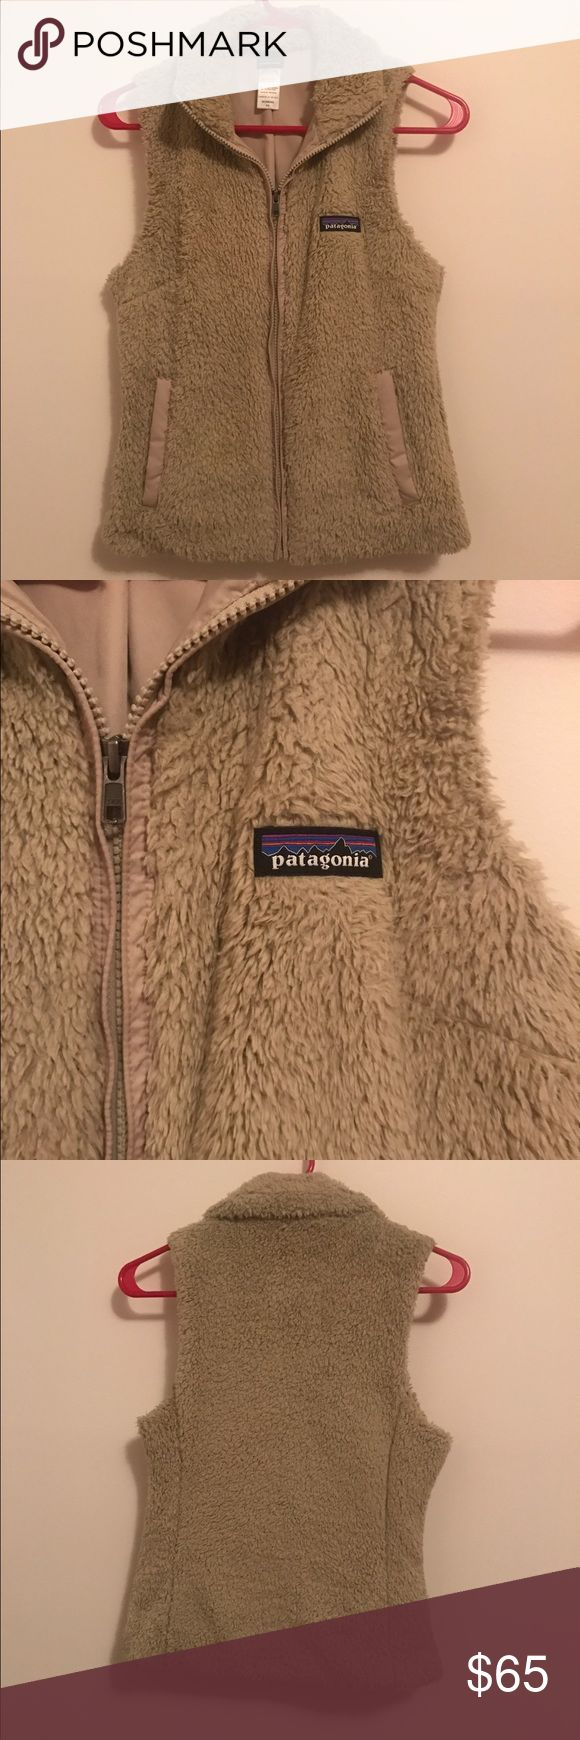 Patagonia Los Gatos Vest XS Gently worn Los Gatos Vest in XS. Worn a few times. I little too short for my liking. Matches literally everything. Patagonia Jackets & Coats Vests